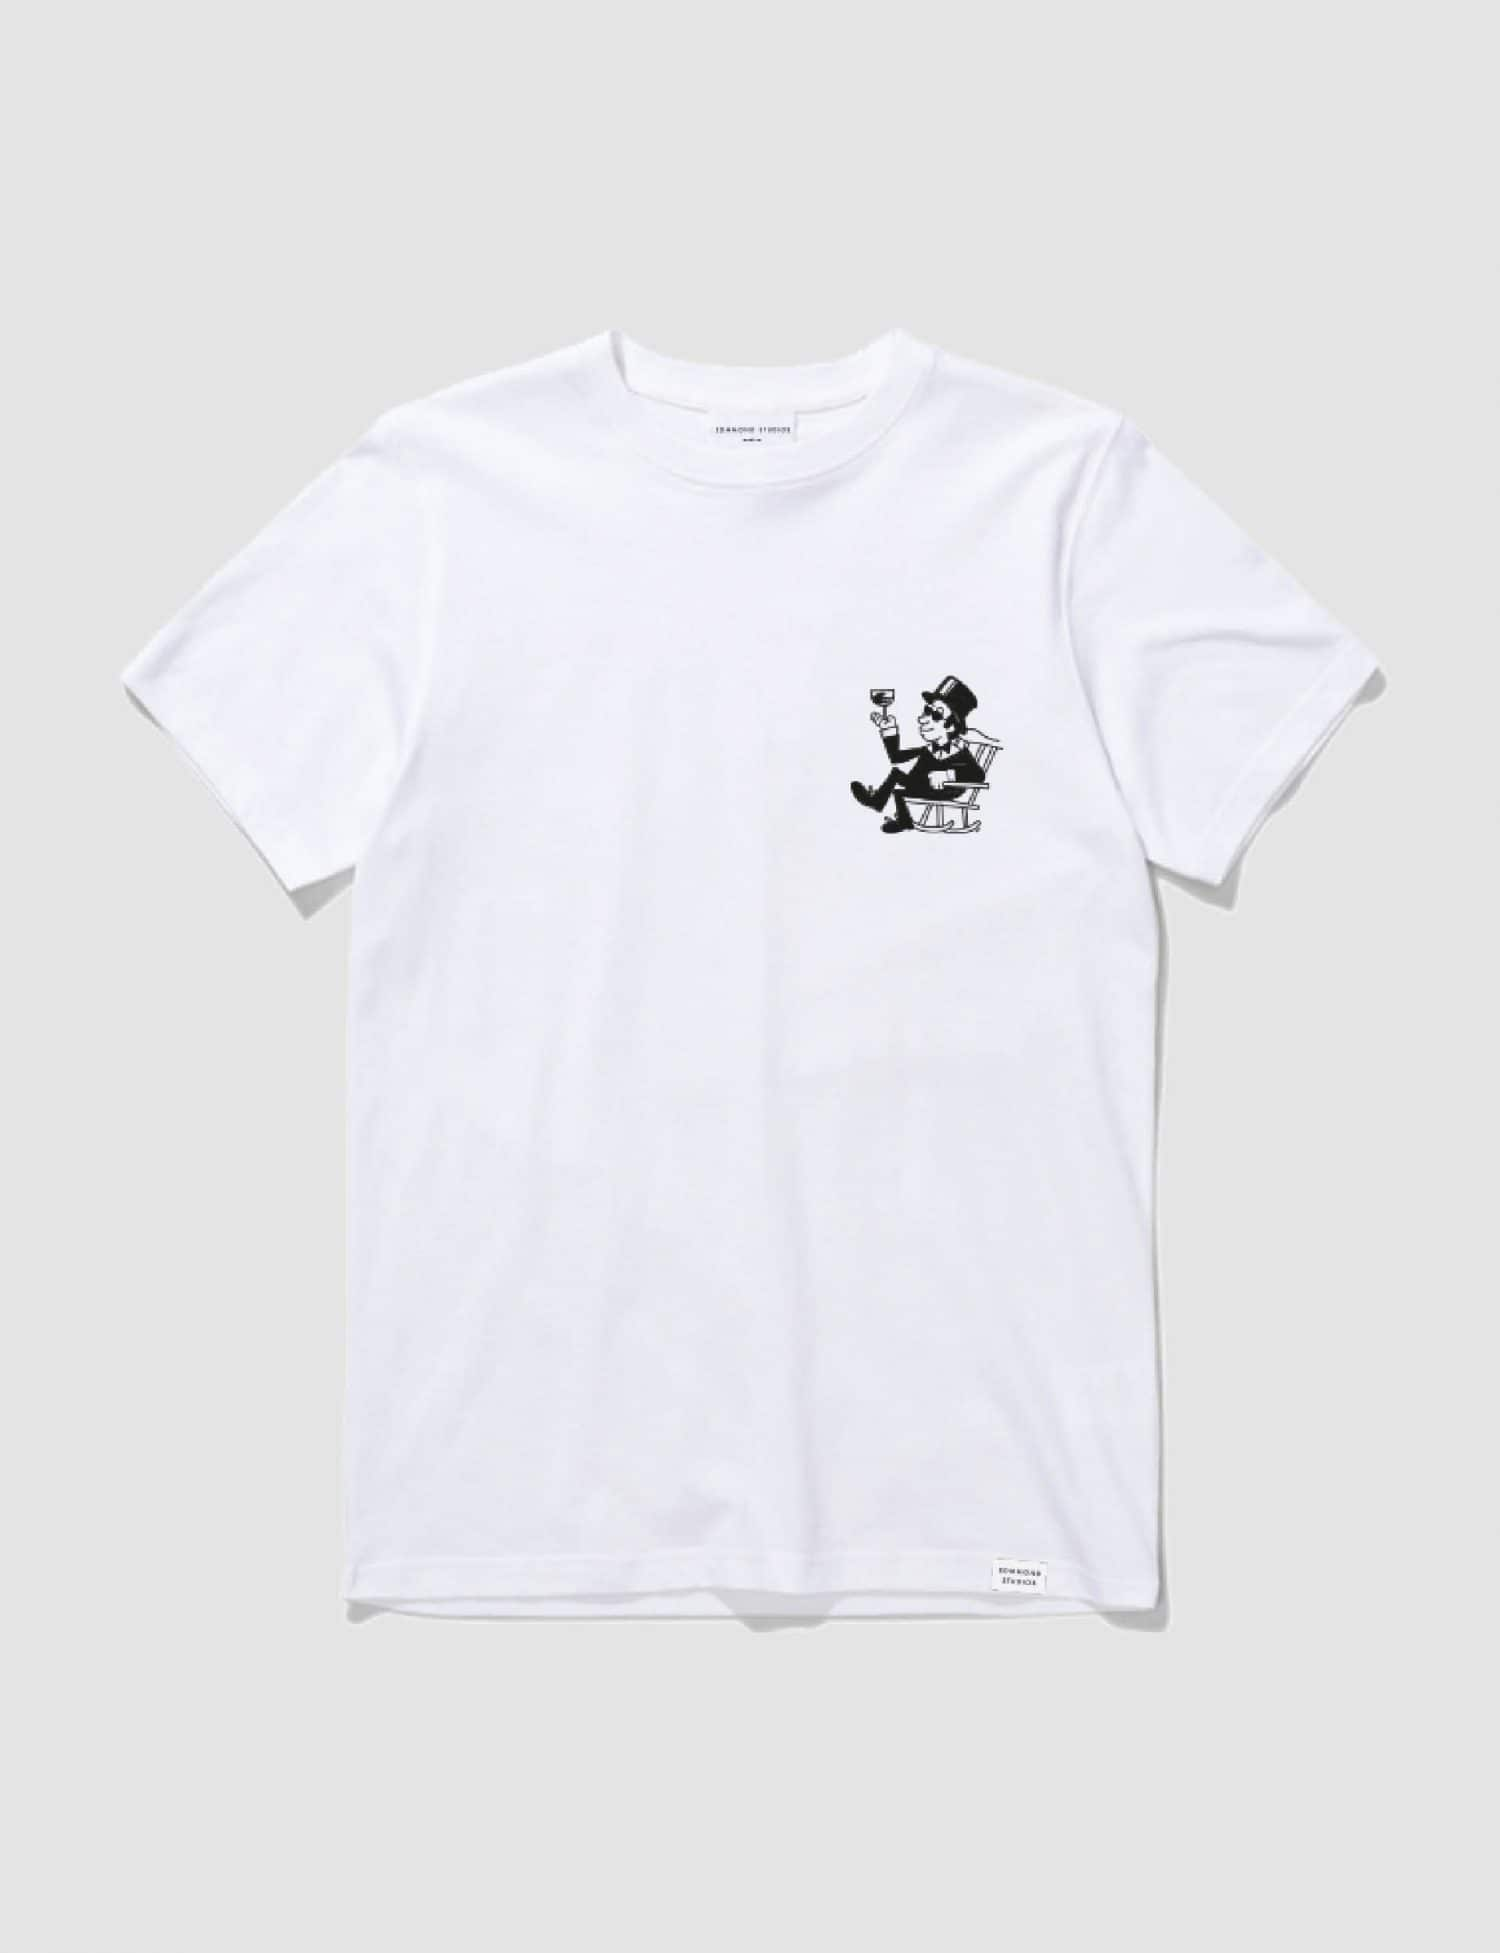 Castart - Edmmond Old is good T-shirt white